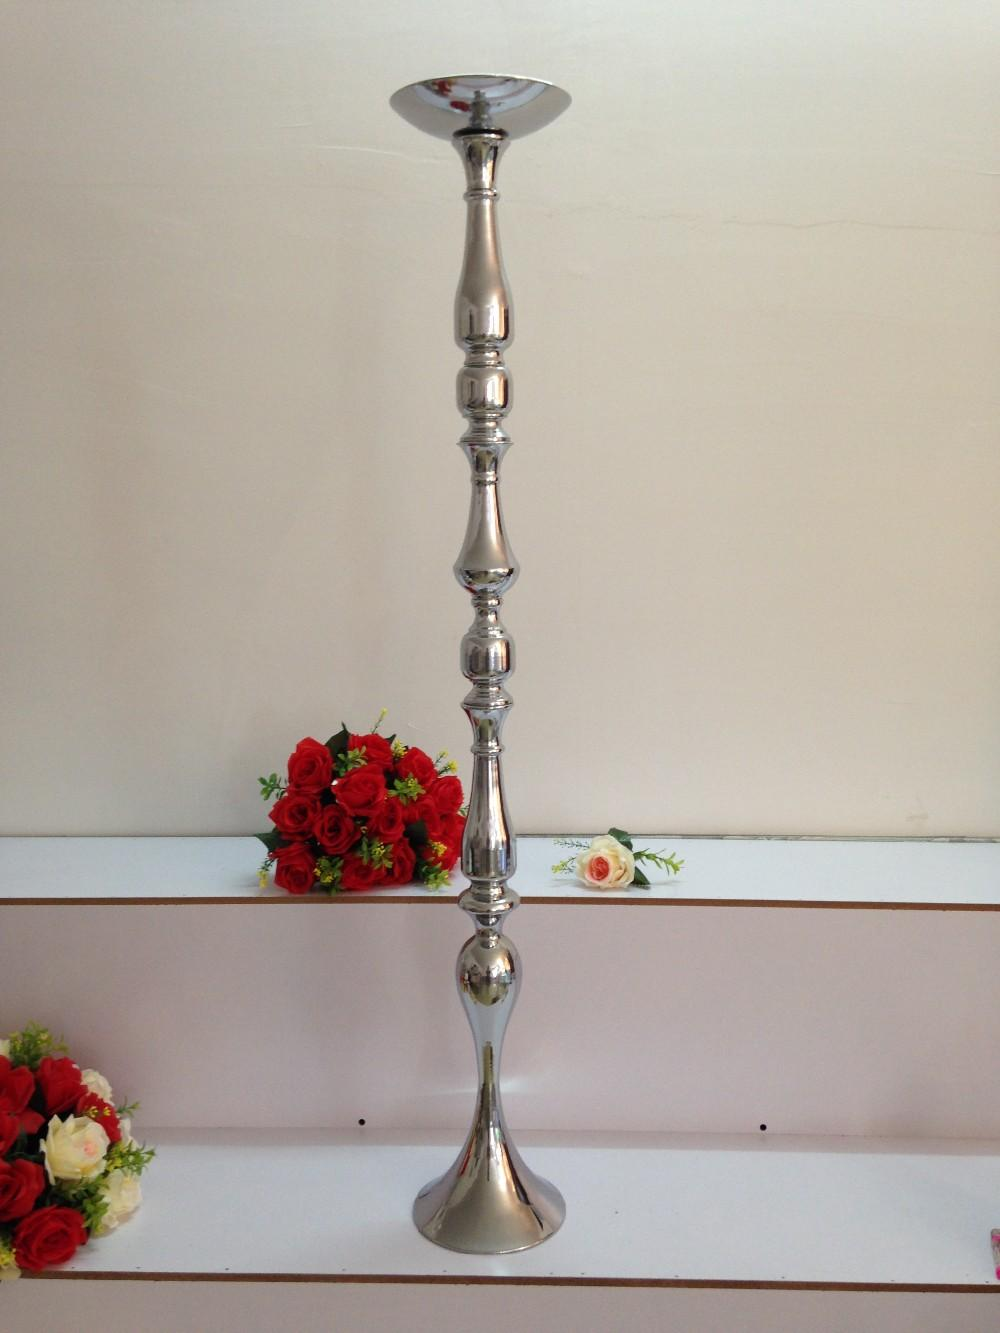 120 cm tall height wedding road lead wedding table centerpiece wedding flower ball holder metal stand T-stage decoration 120 CM